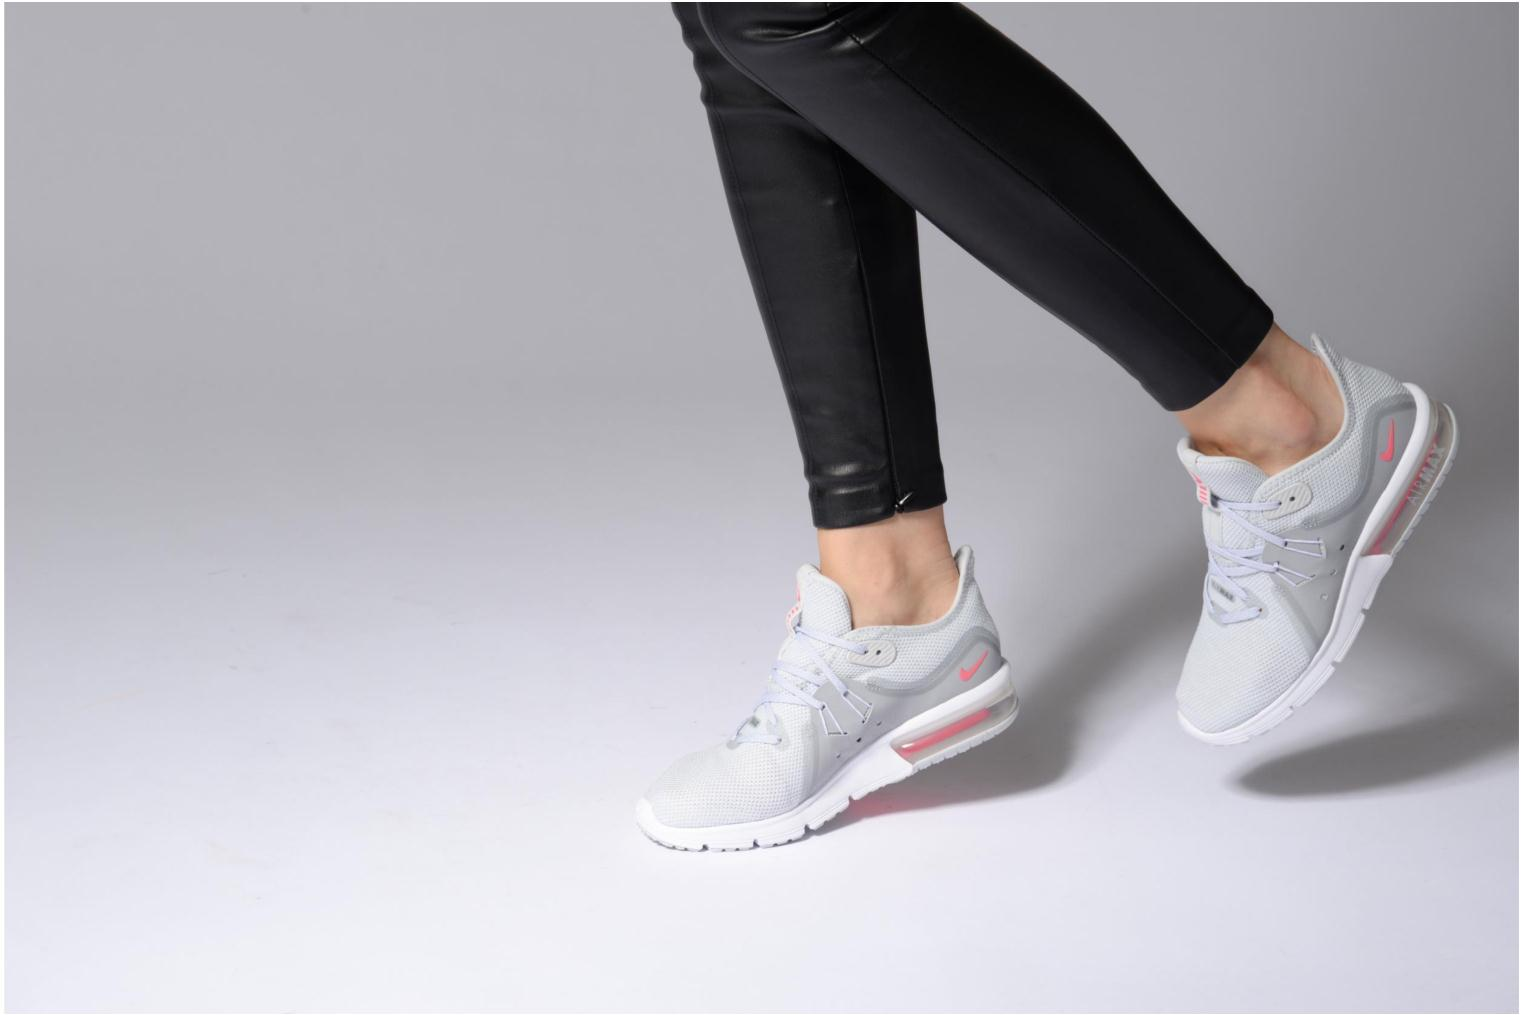 Wmns Nike Air Max Sequent 3 Pure Platinum/Racer Pink-Wolf Grey